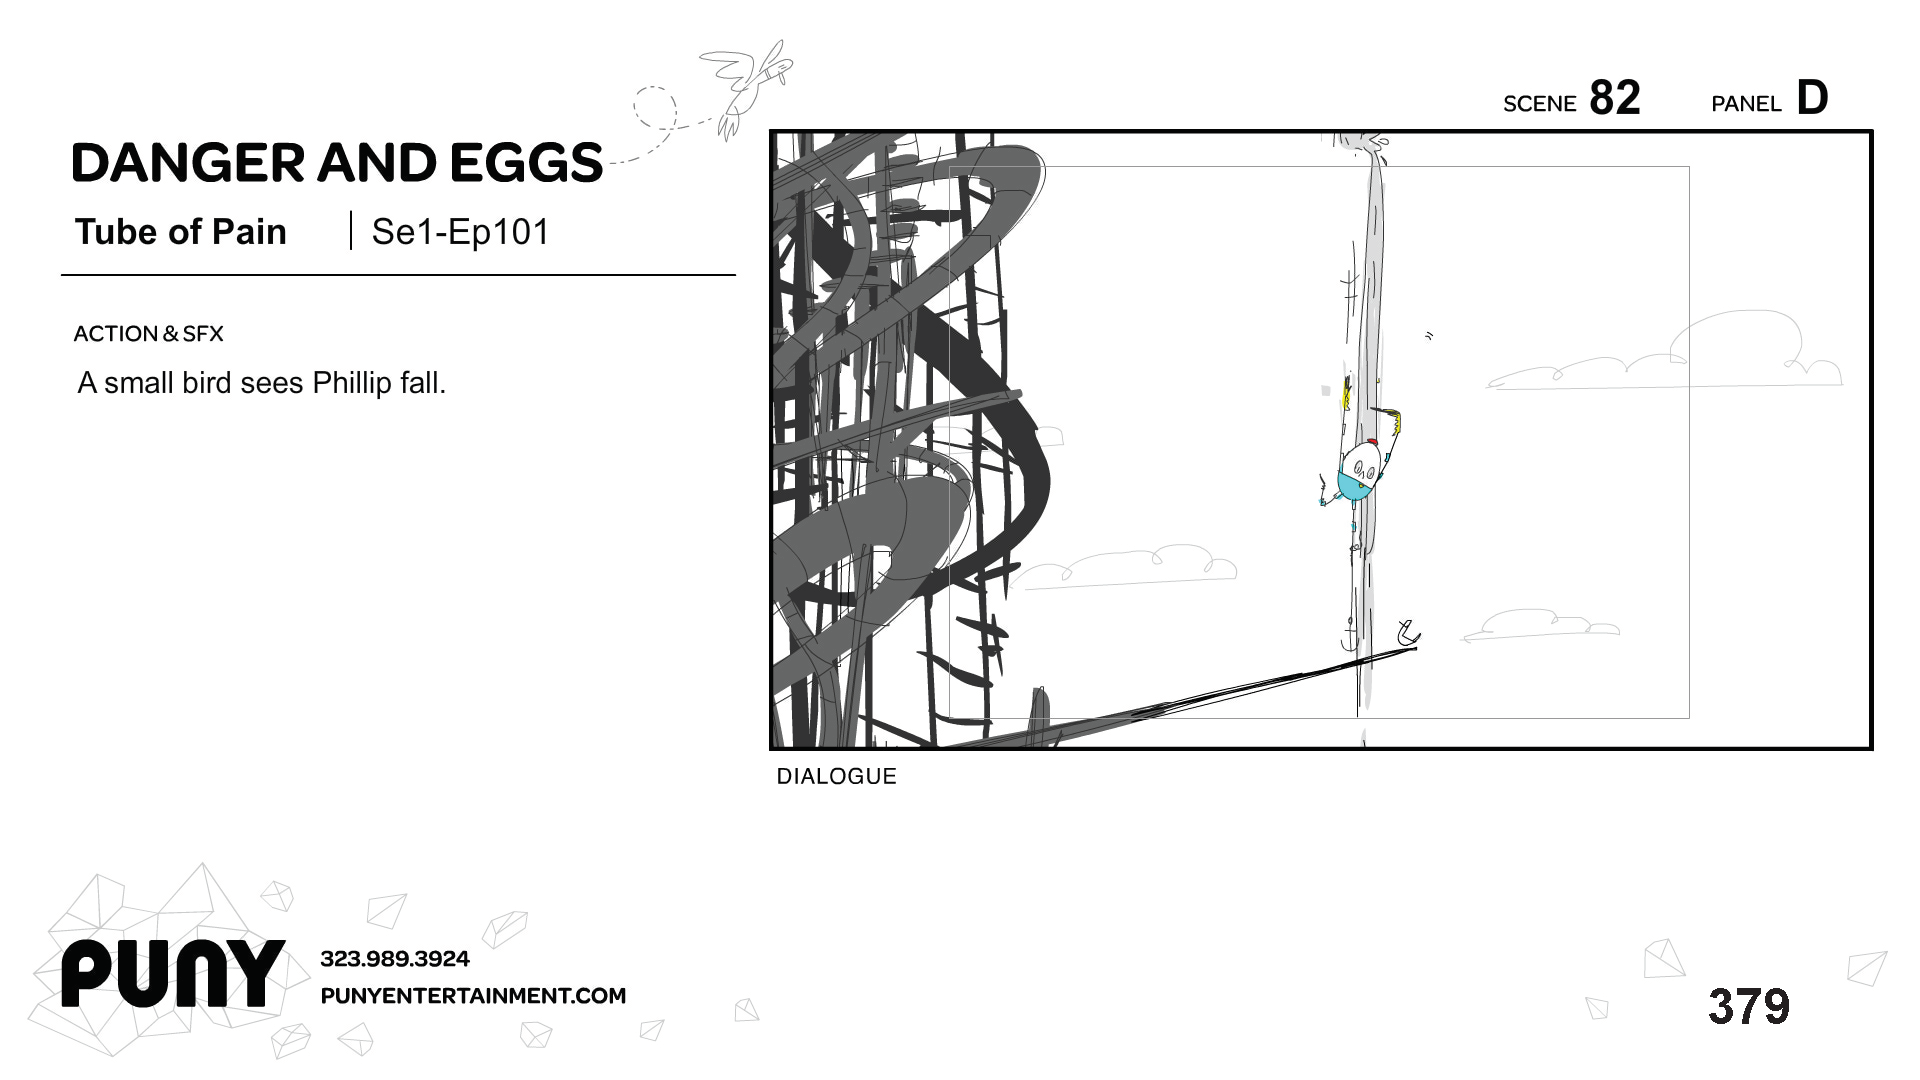 MikeOwens_STORYBOARDS_DangerAndEggs_Page_274.png